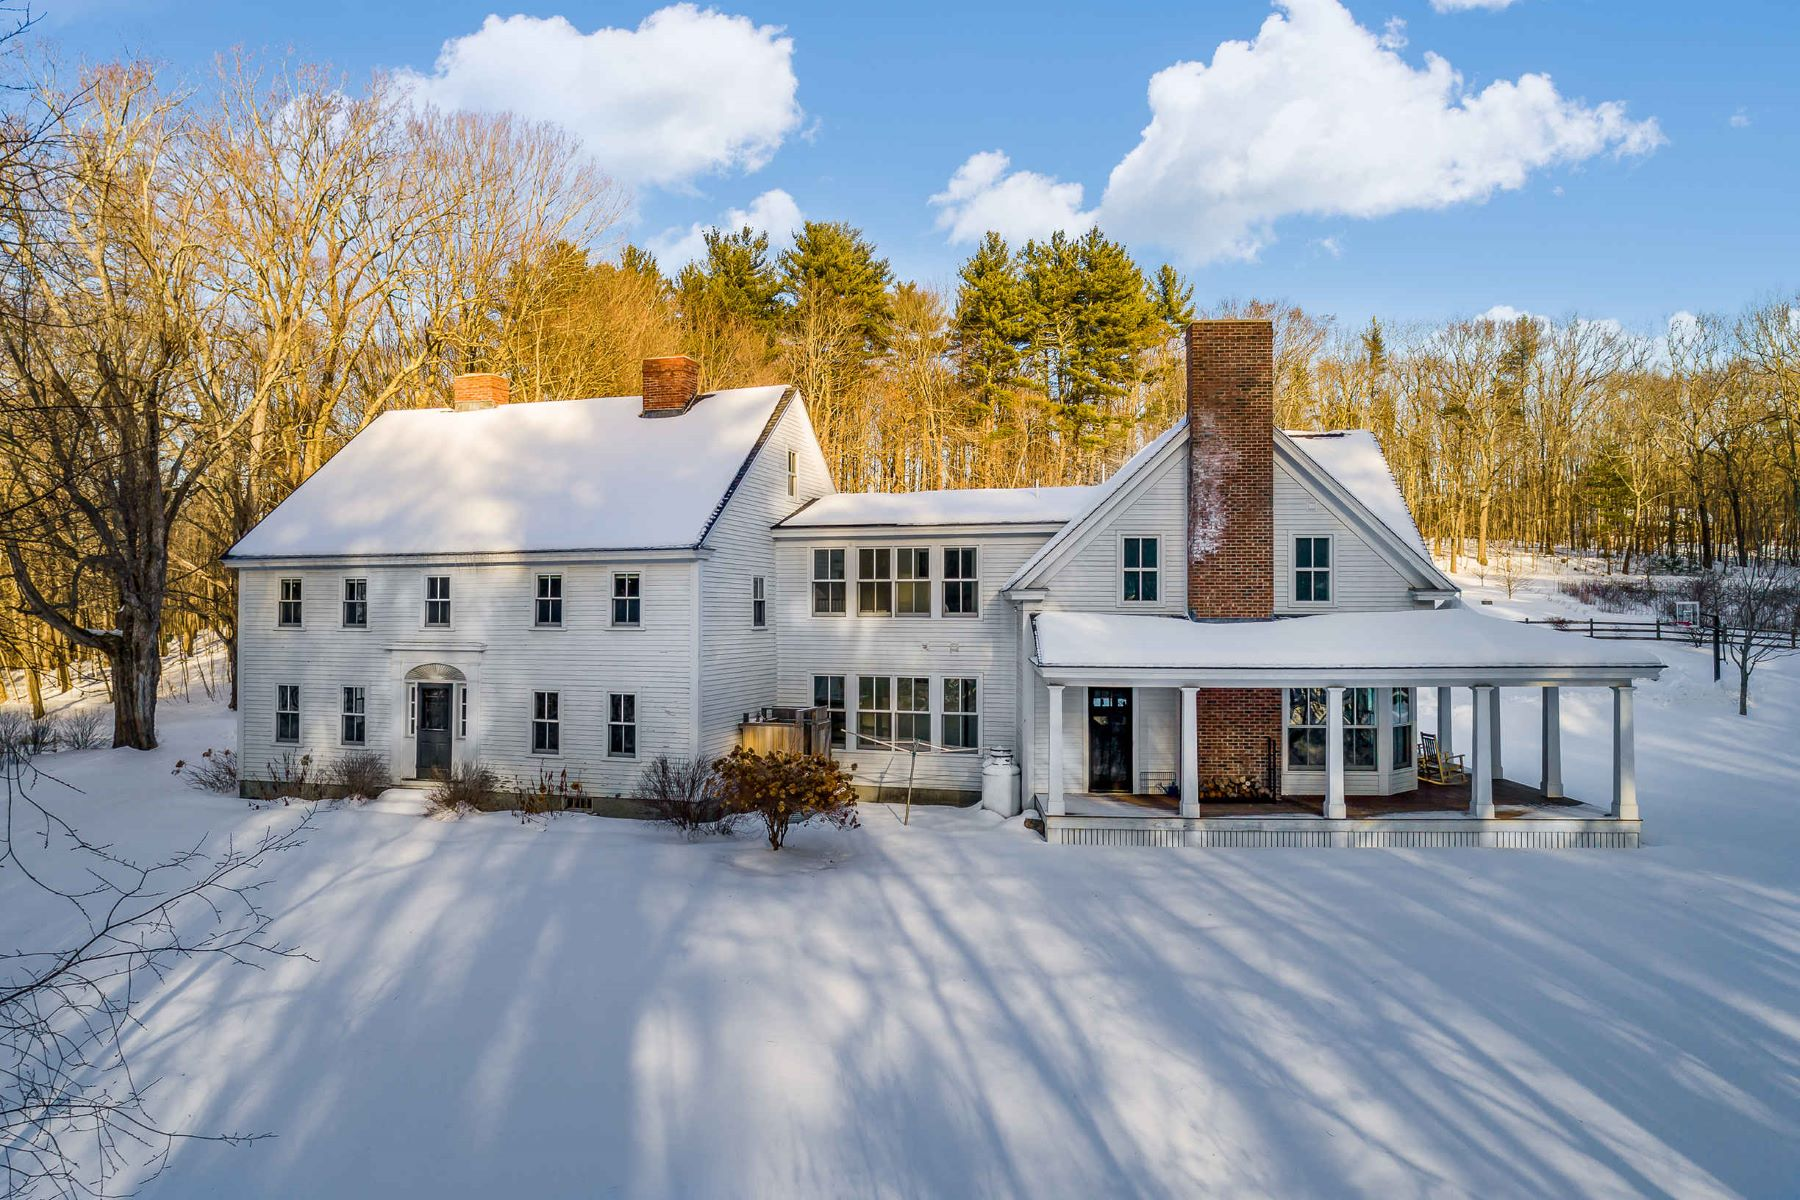 Single Family Homes for Sale at Hill Garrison - Ideal Country Estate in South Berwick 33 Brattle Street South Berwick, Maine 03908 United States